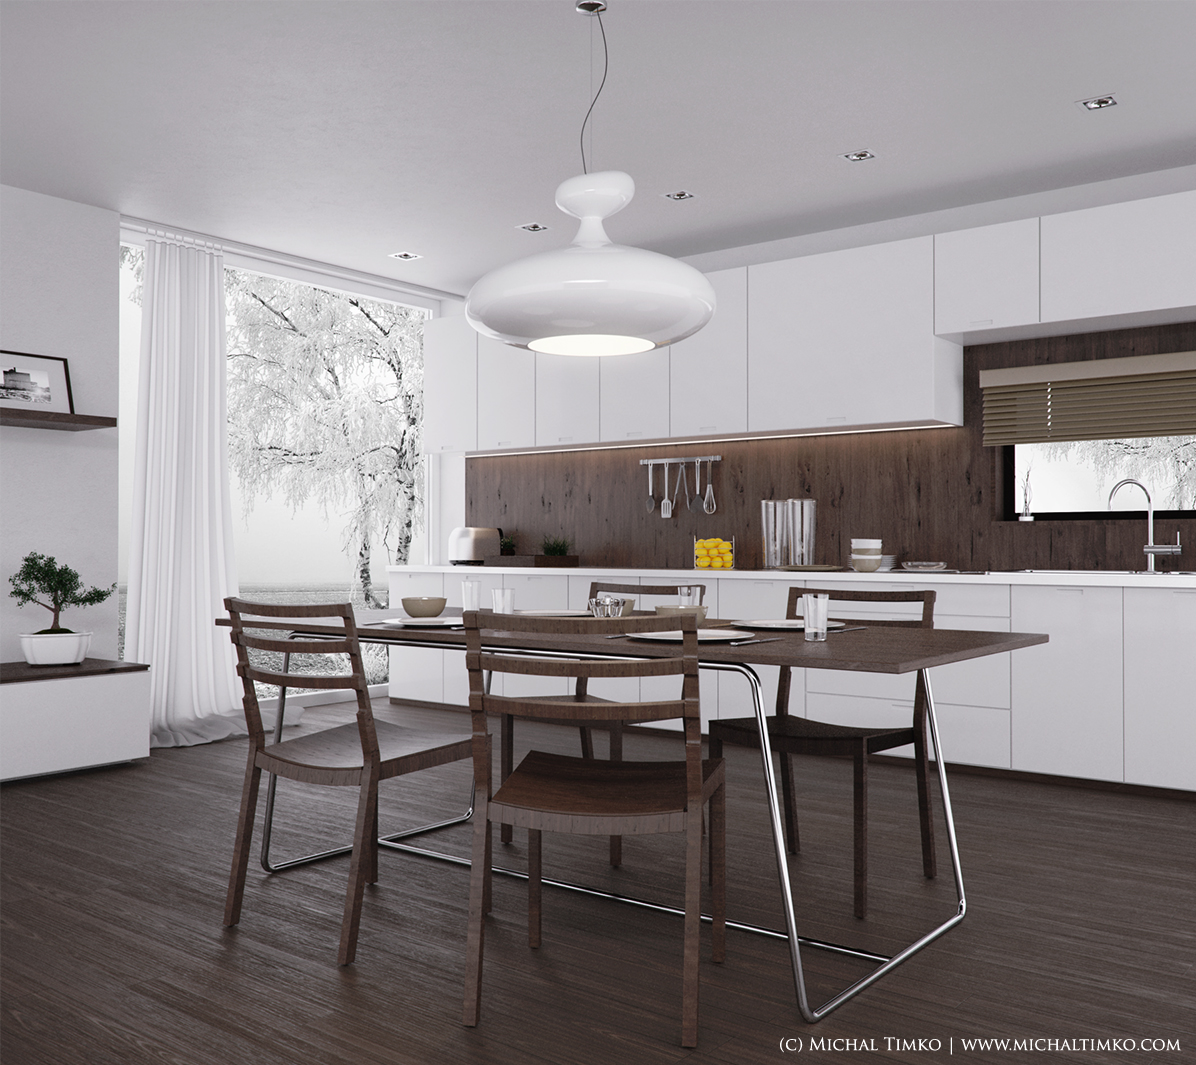 Luxury Kitchen Design Ideas: Modern Luxury Kitchen (catalogue Style)